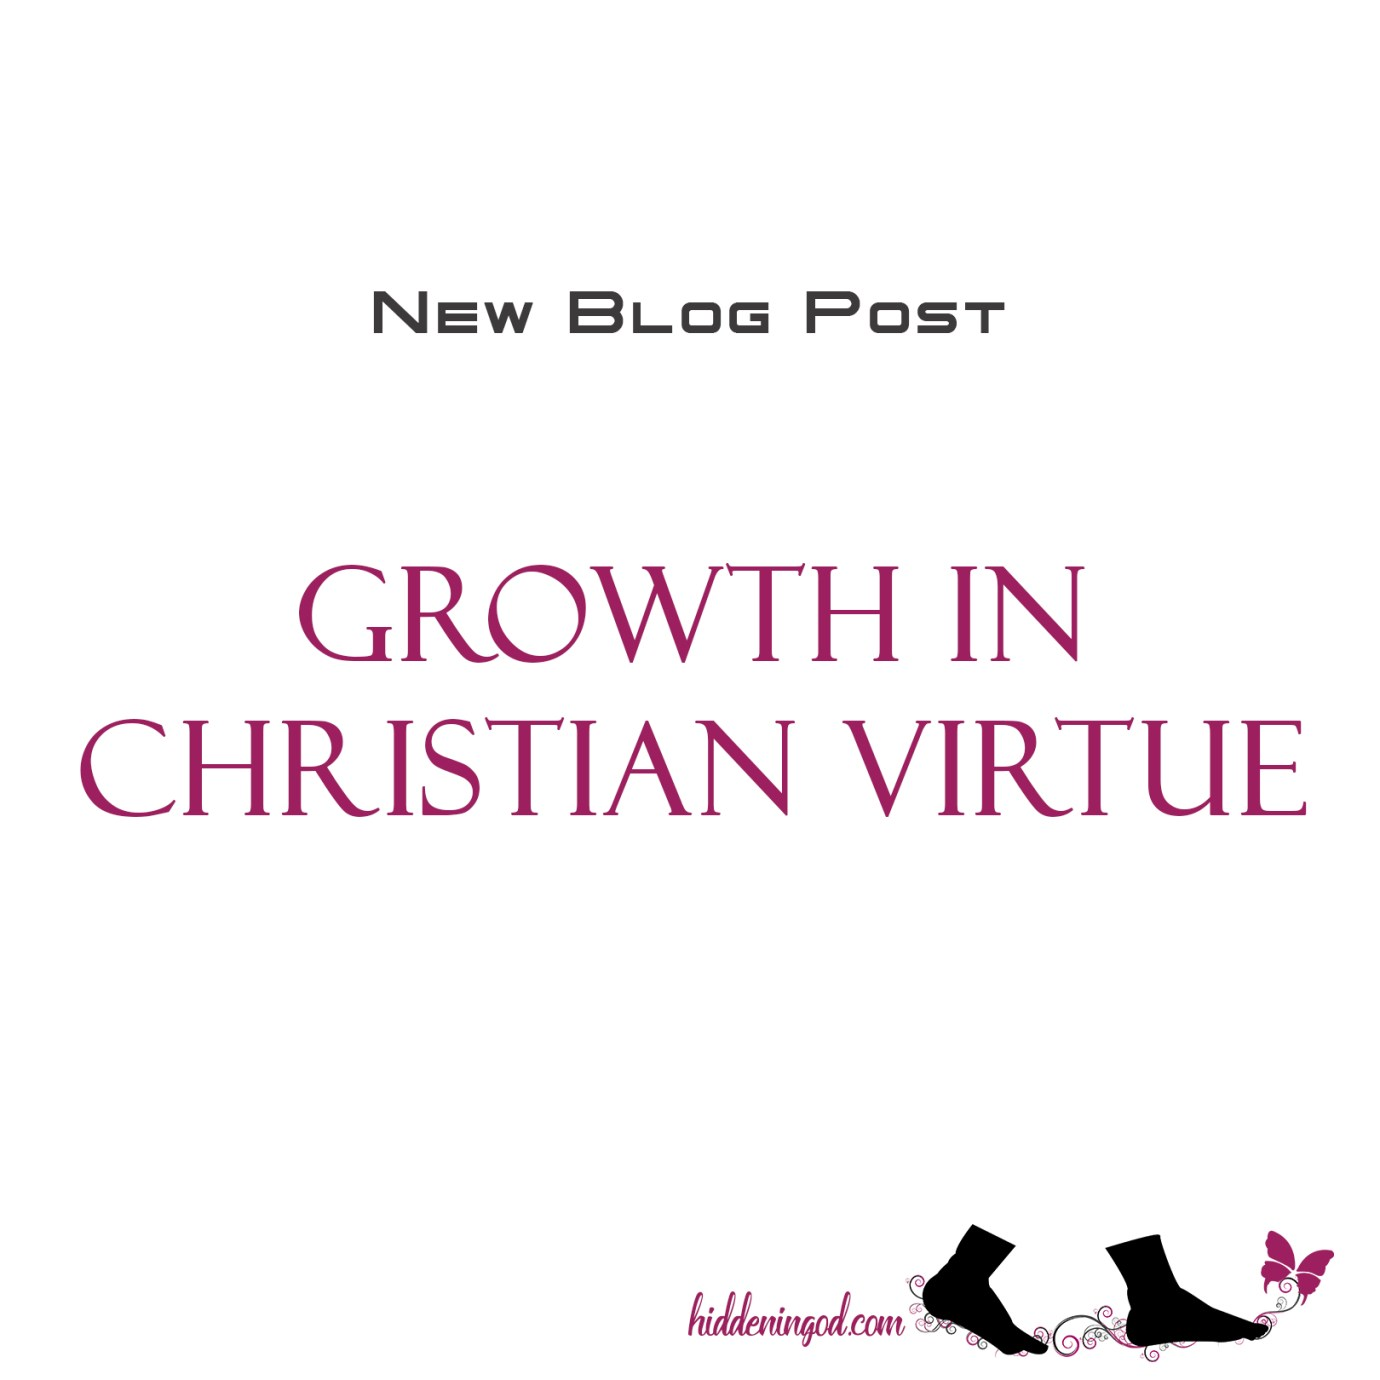 Growth in Christian Virtue